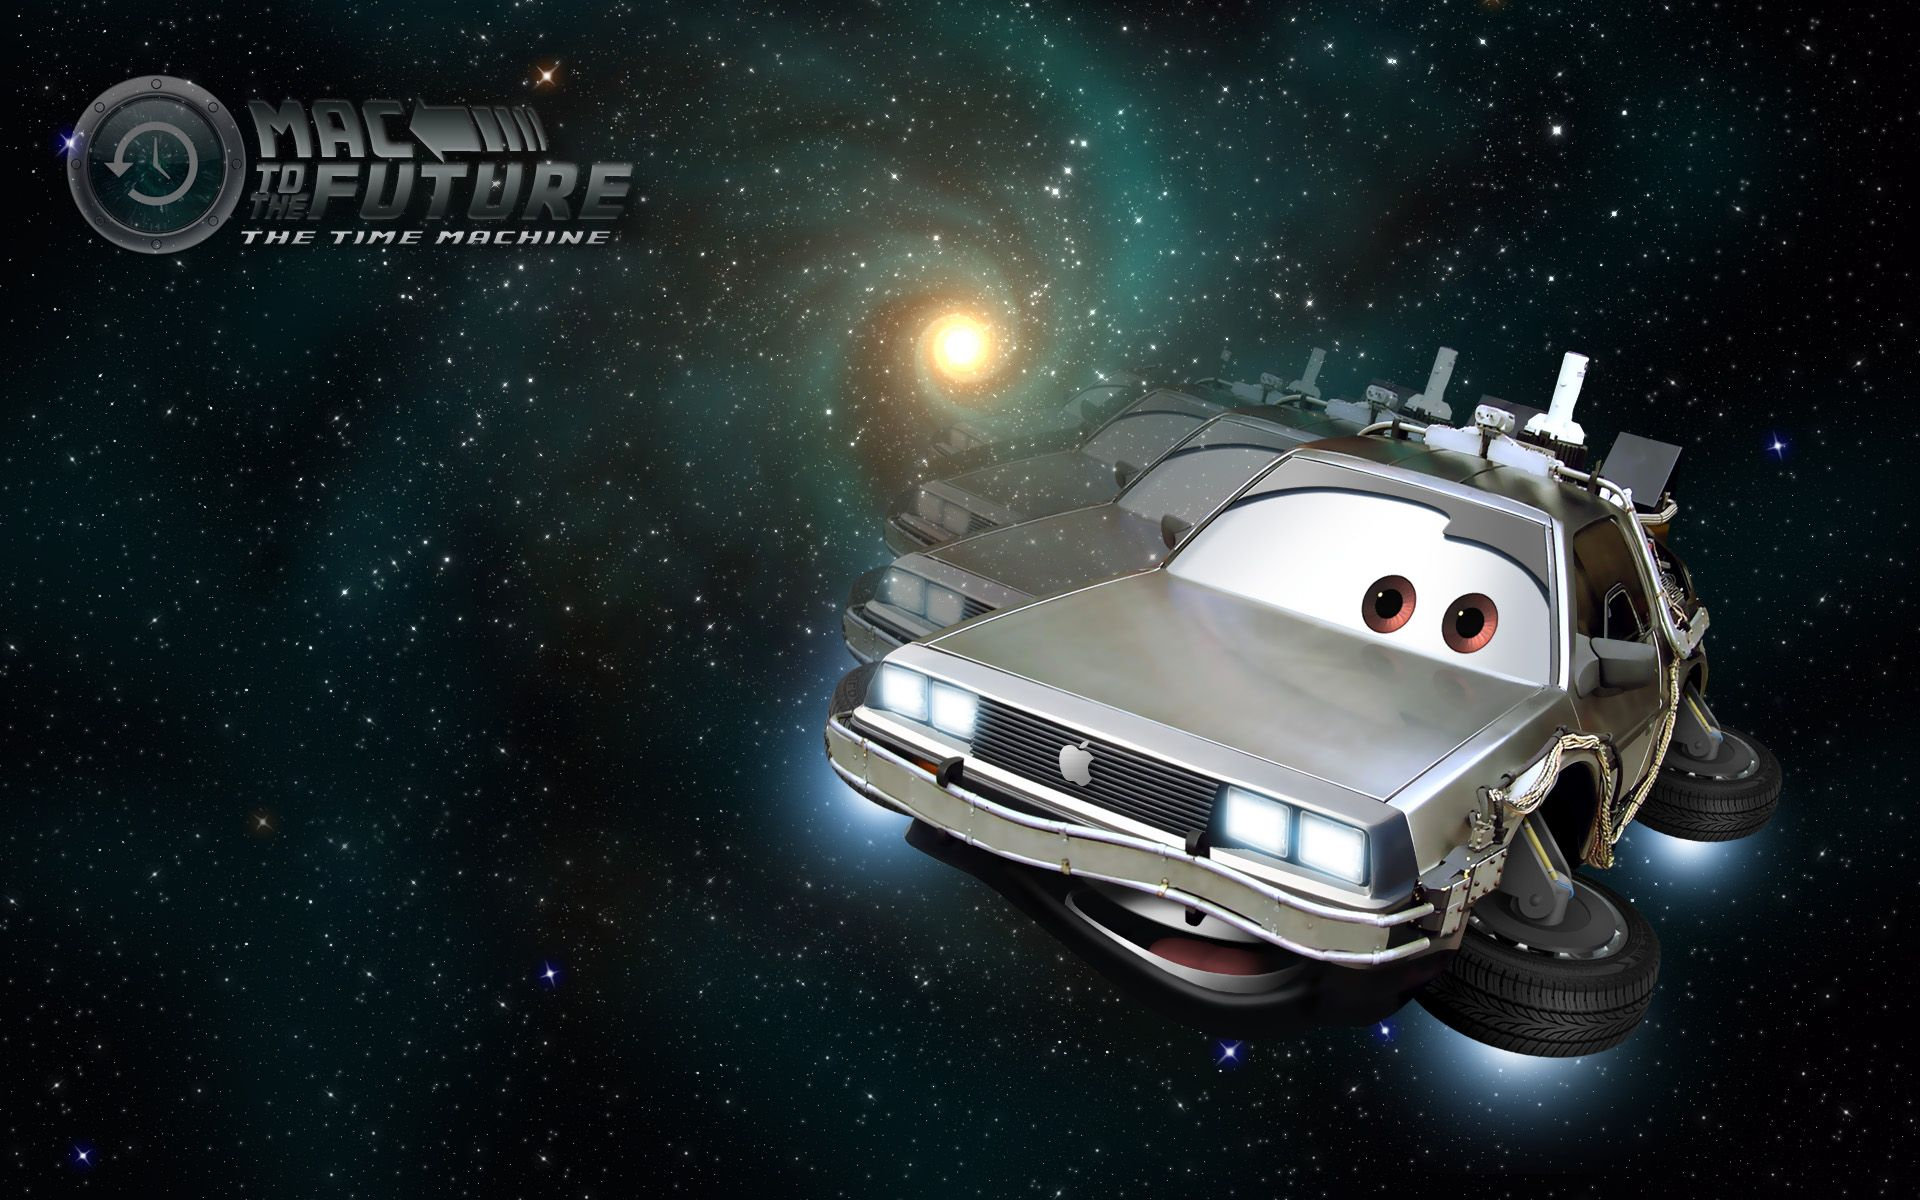 The DeLorean time machine is a fictional automobilebased